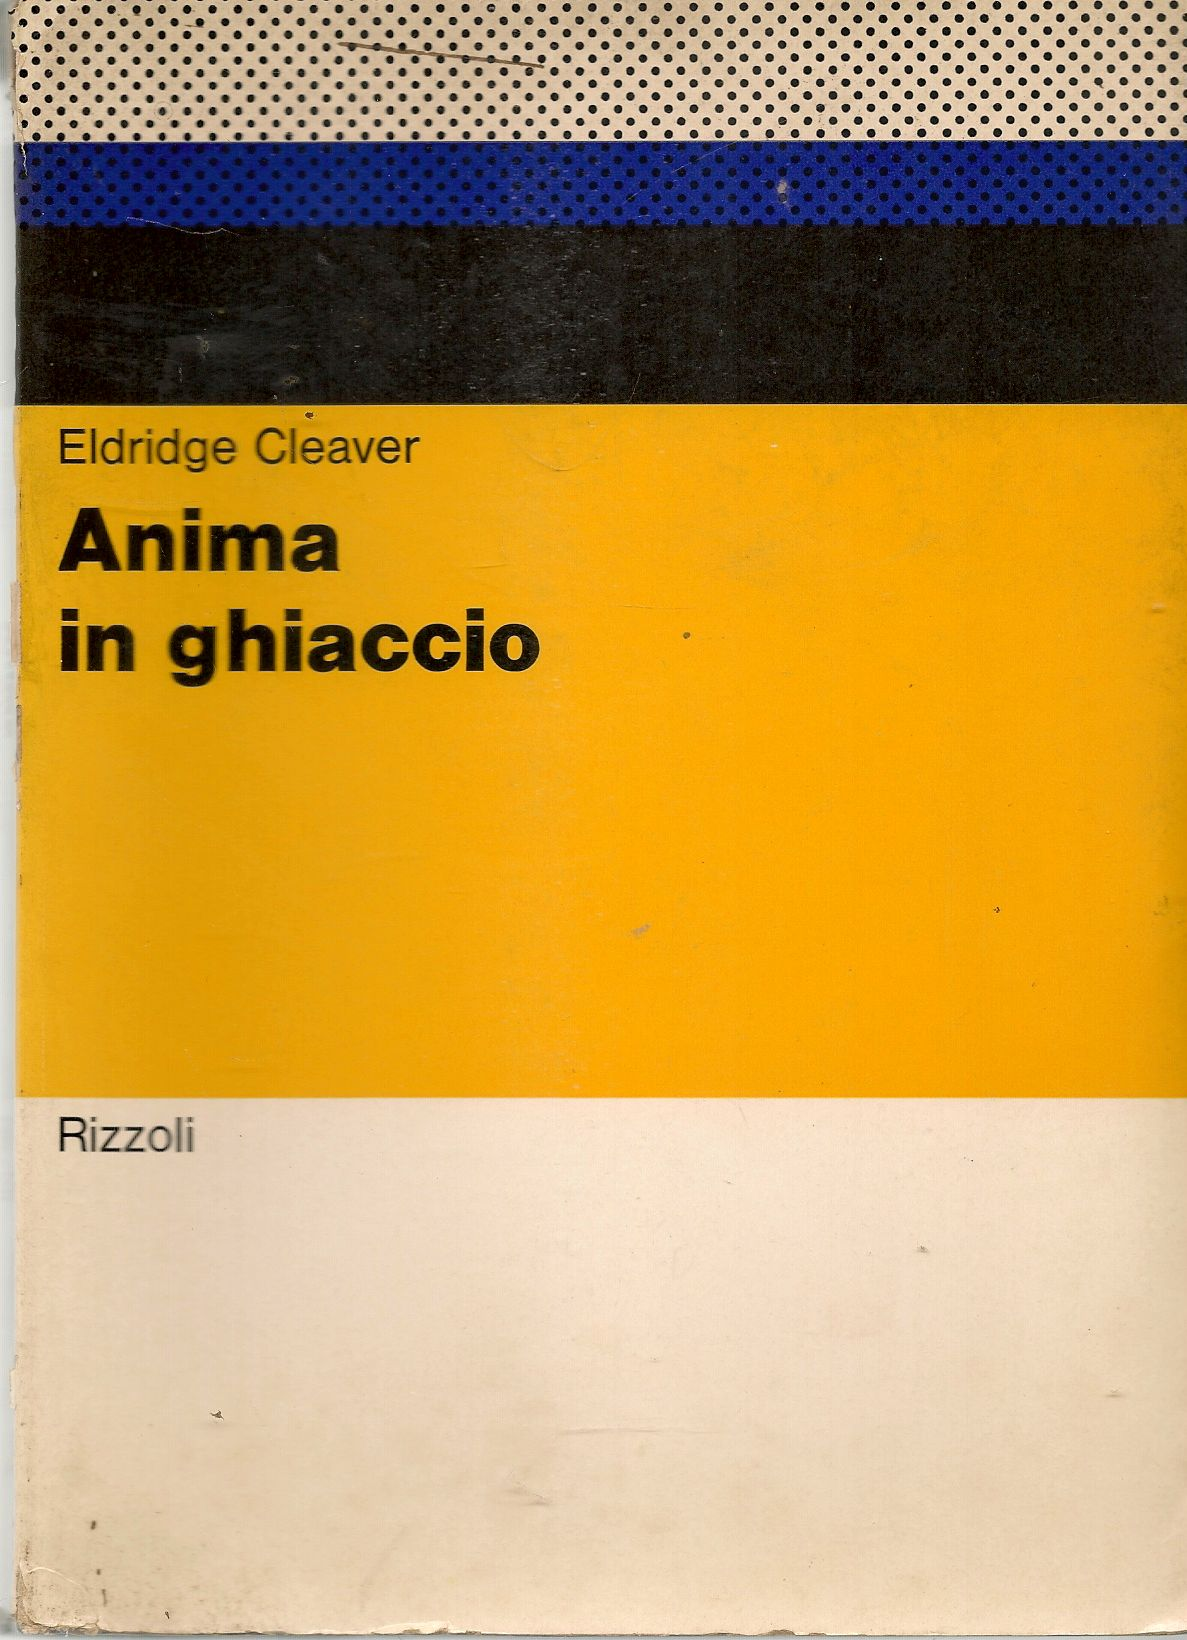 ANIMA IN GHIACCIO - ELDRIDGE CLEAVER